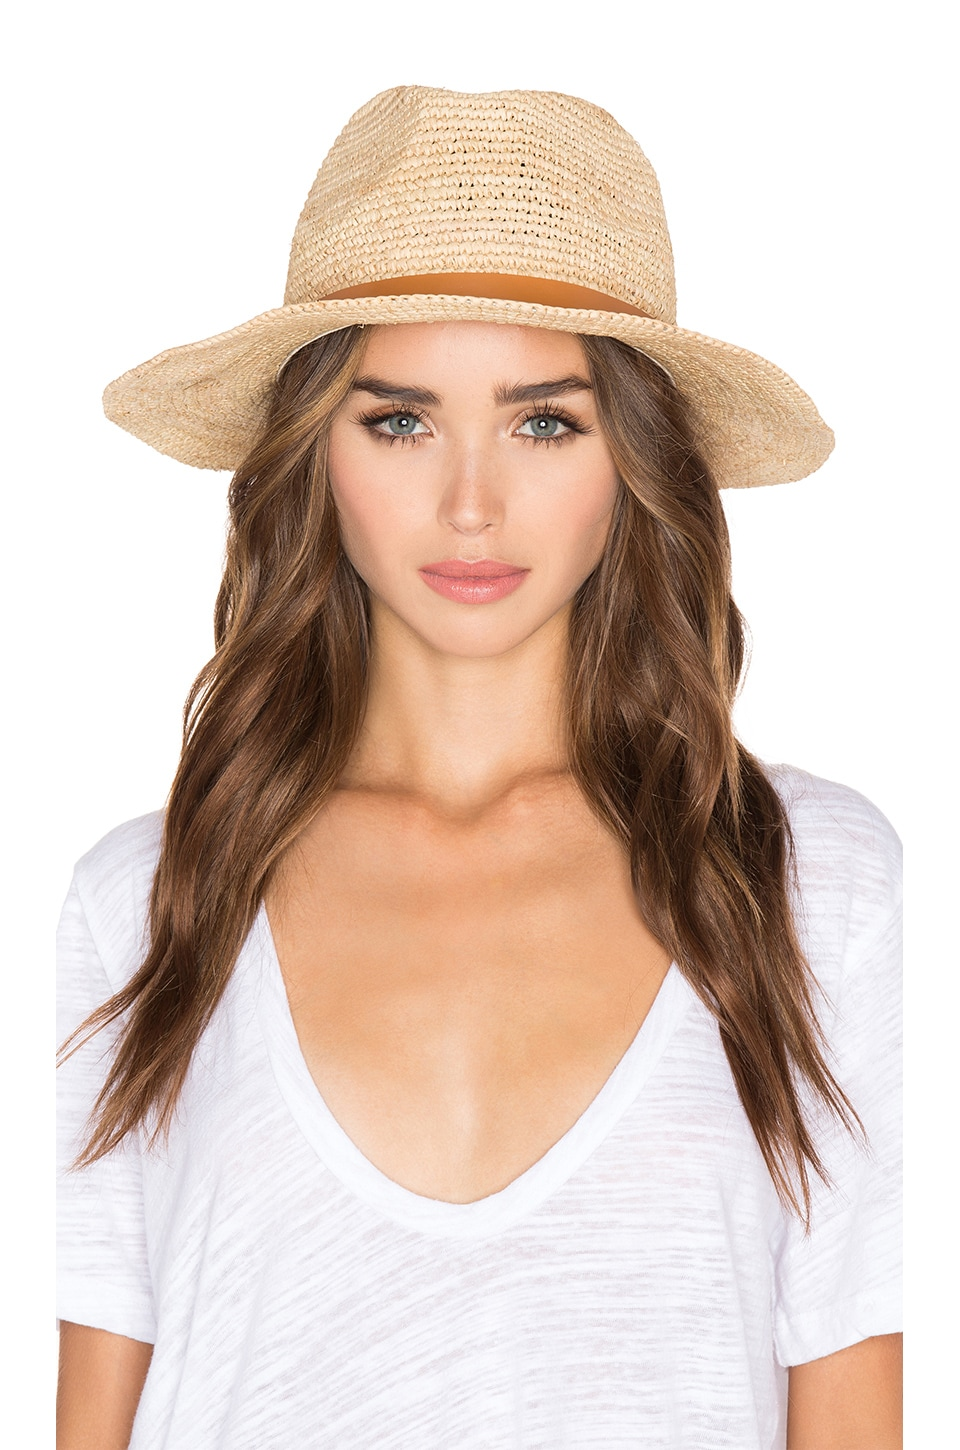 Hat Attack Raffia Crochet Medium Brim Hat in Natural & Tan Narrow Leather Band